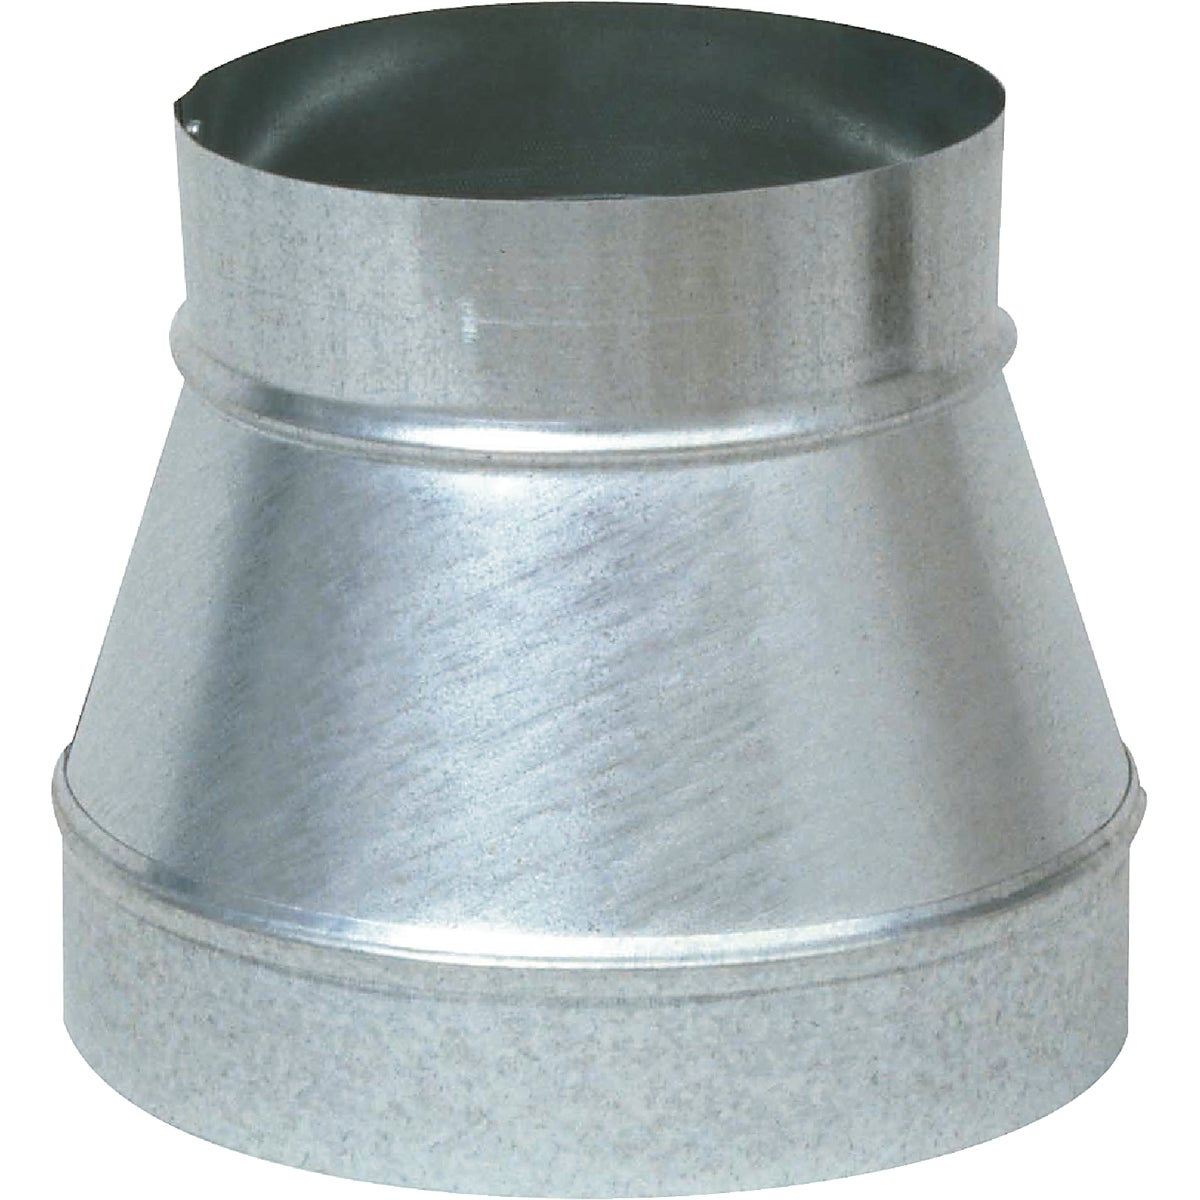 8-6 INCREASER/REDUCER - GV0791 by Imperial Mfg Group